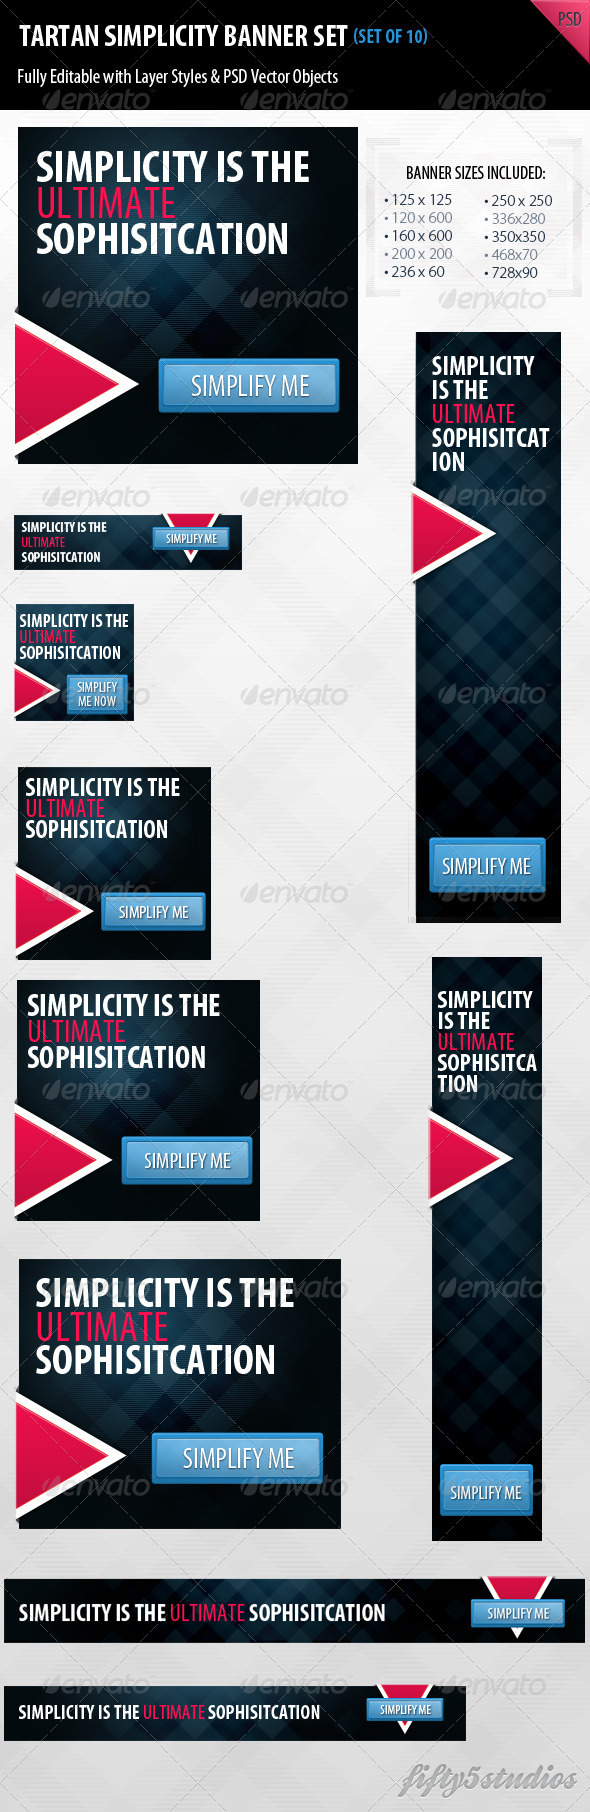 Tartan Simplicity Banner Set - Banners & Ads Web Elements